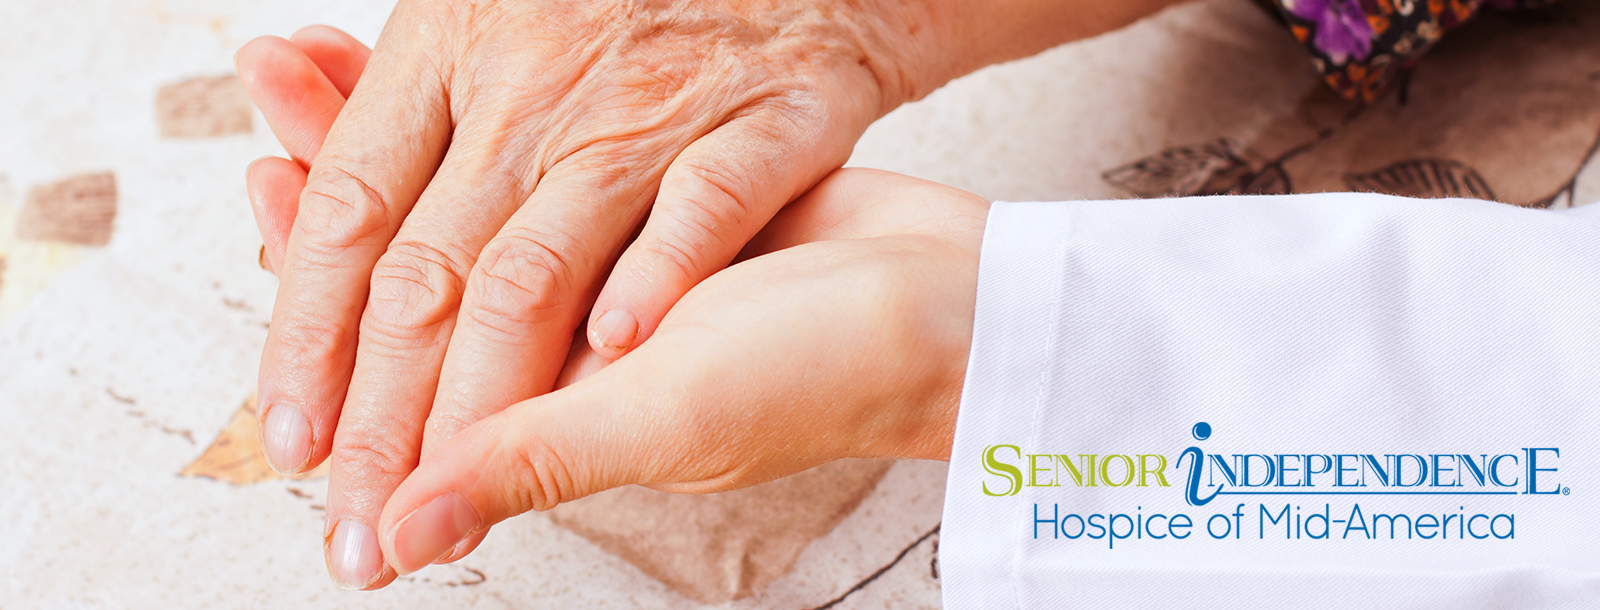 Hospice Care: Quality of life through comfort, dignity, and understanding.